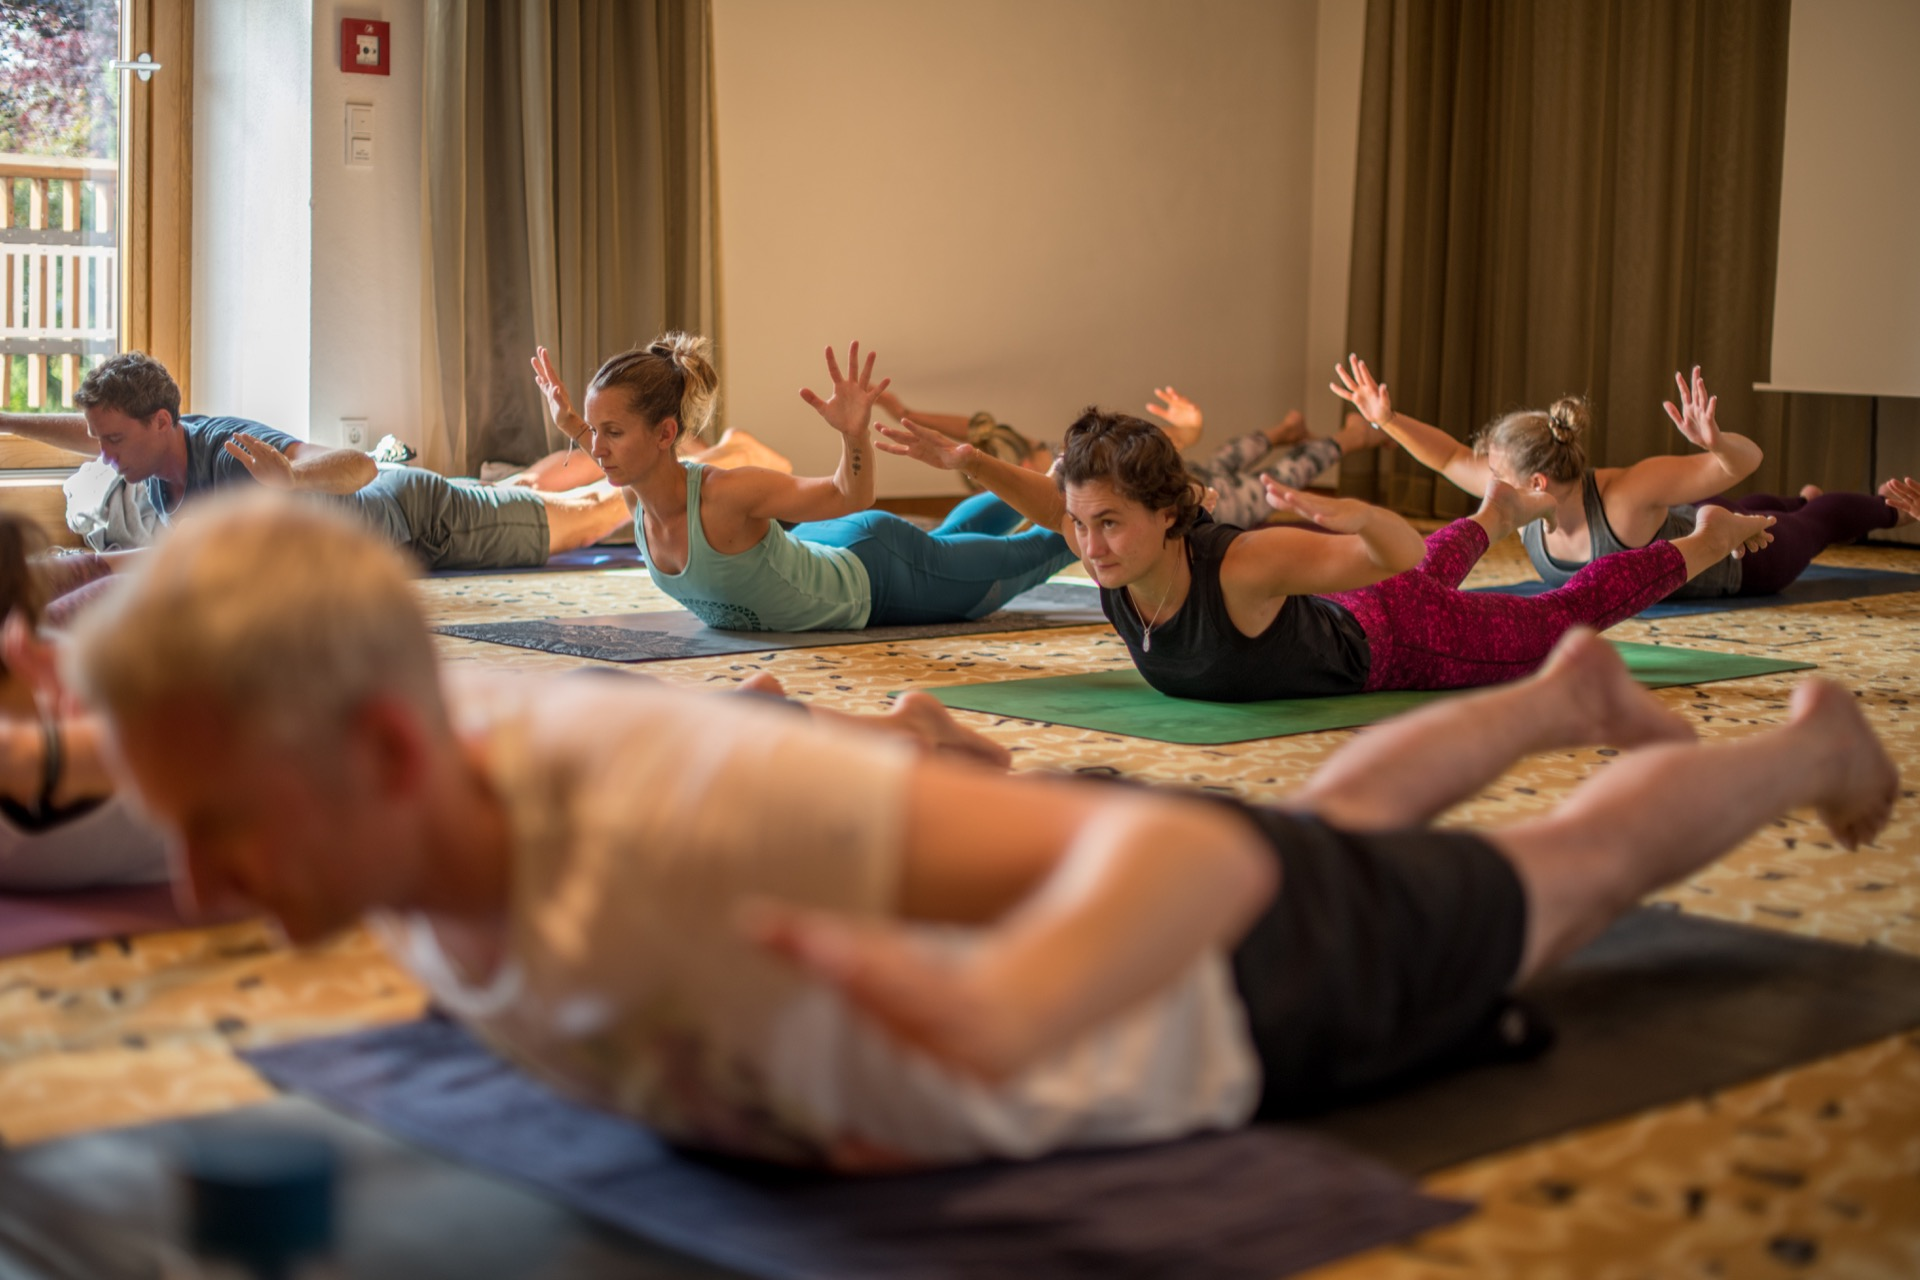 Hie-Kim-Friends-2019-Yoga-Retreat-Alina-Matis-Photography-102 - Hie Kim Yoga - Yoga Retreat - Yoga Workshops und Reisen